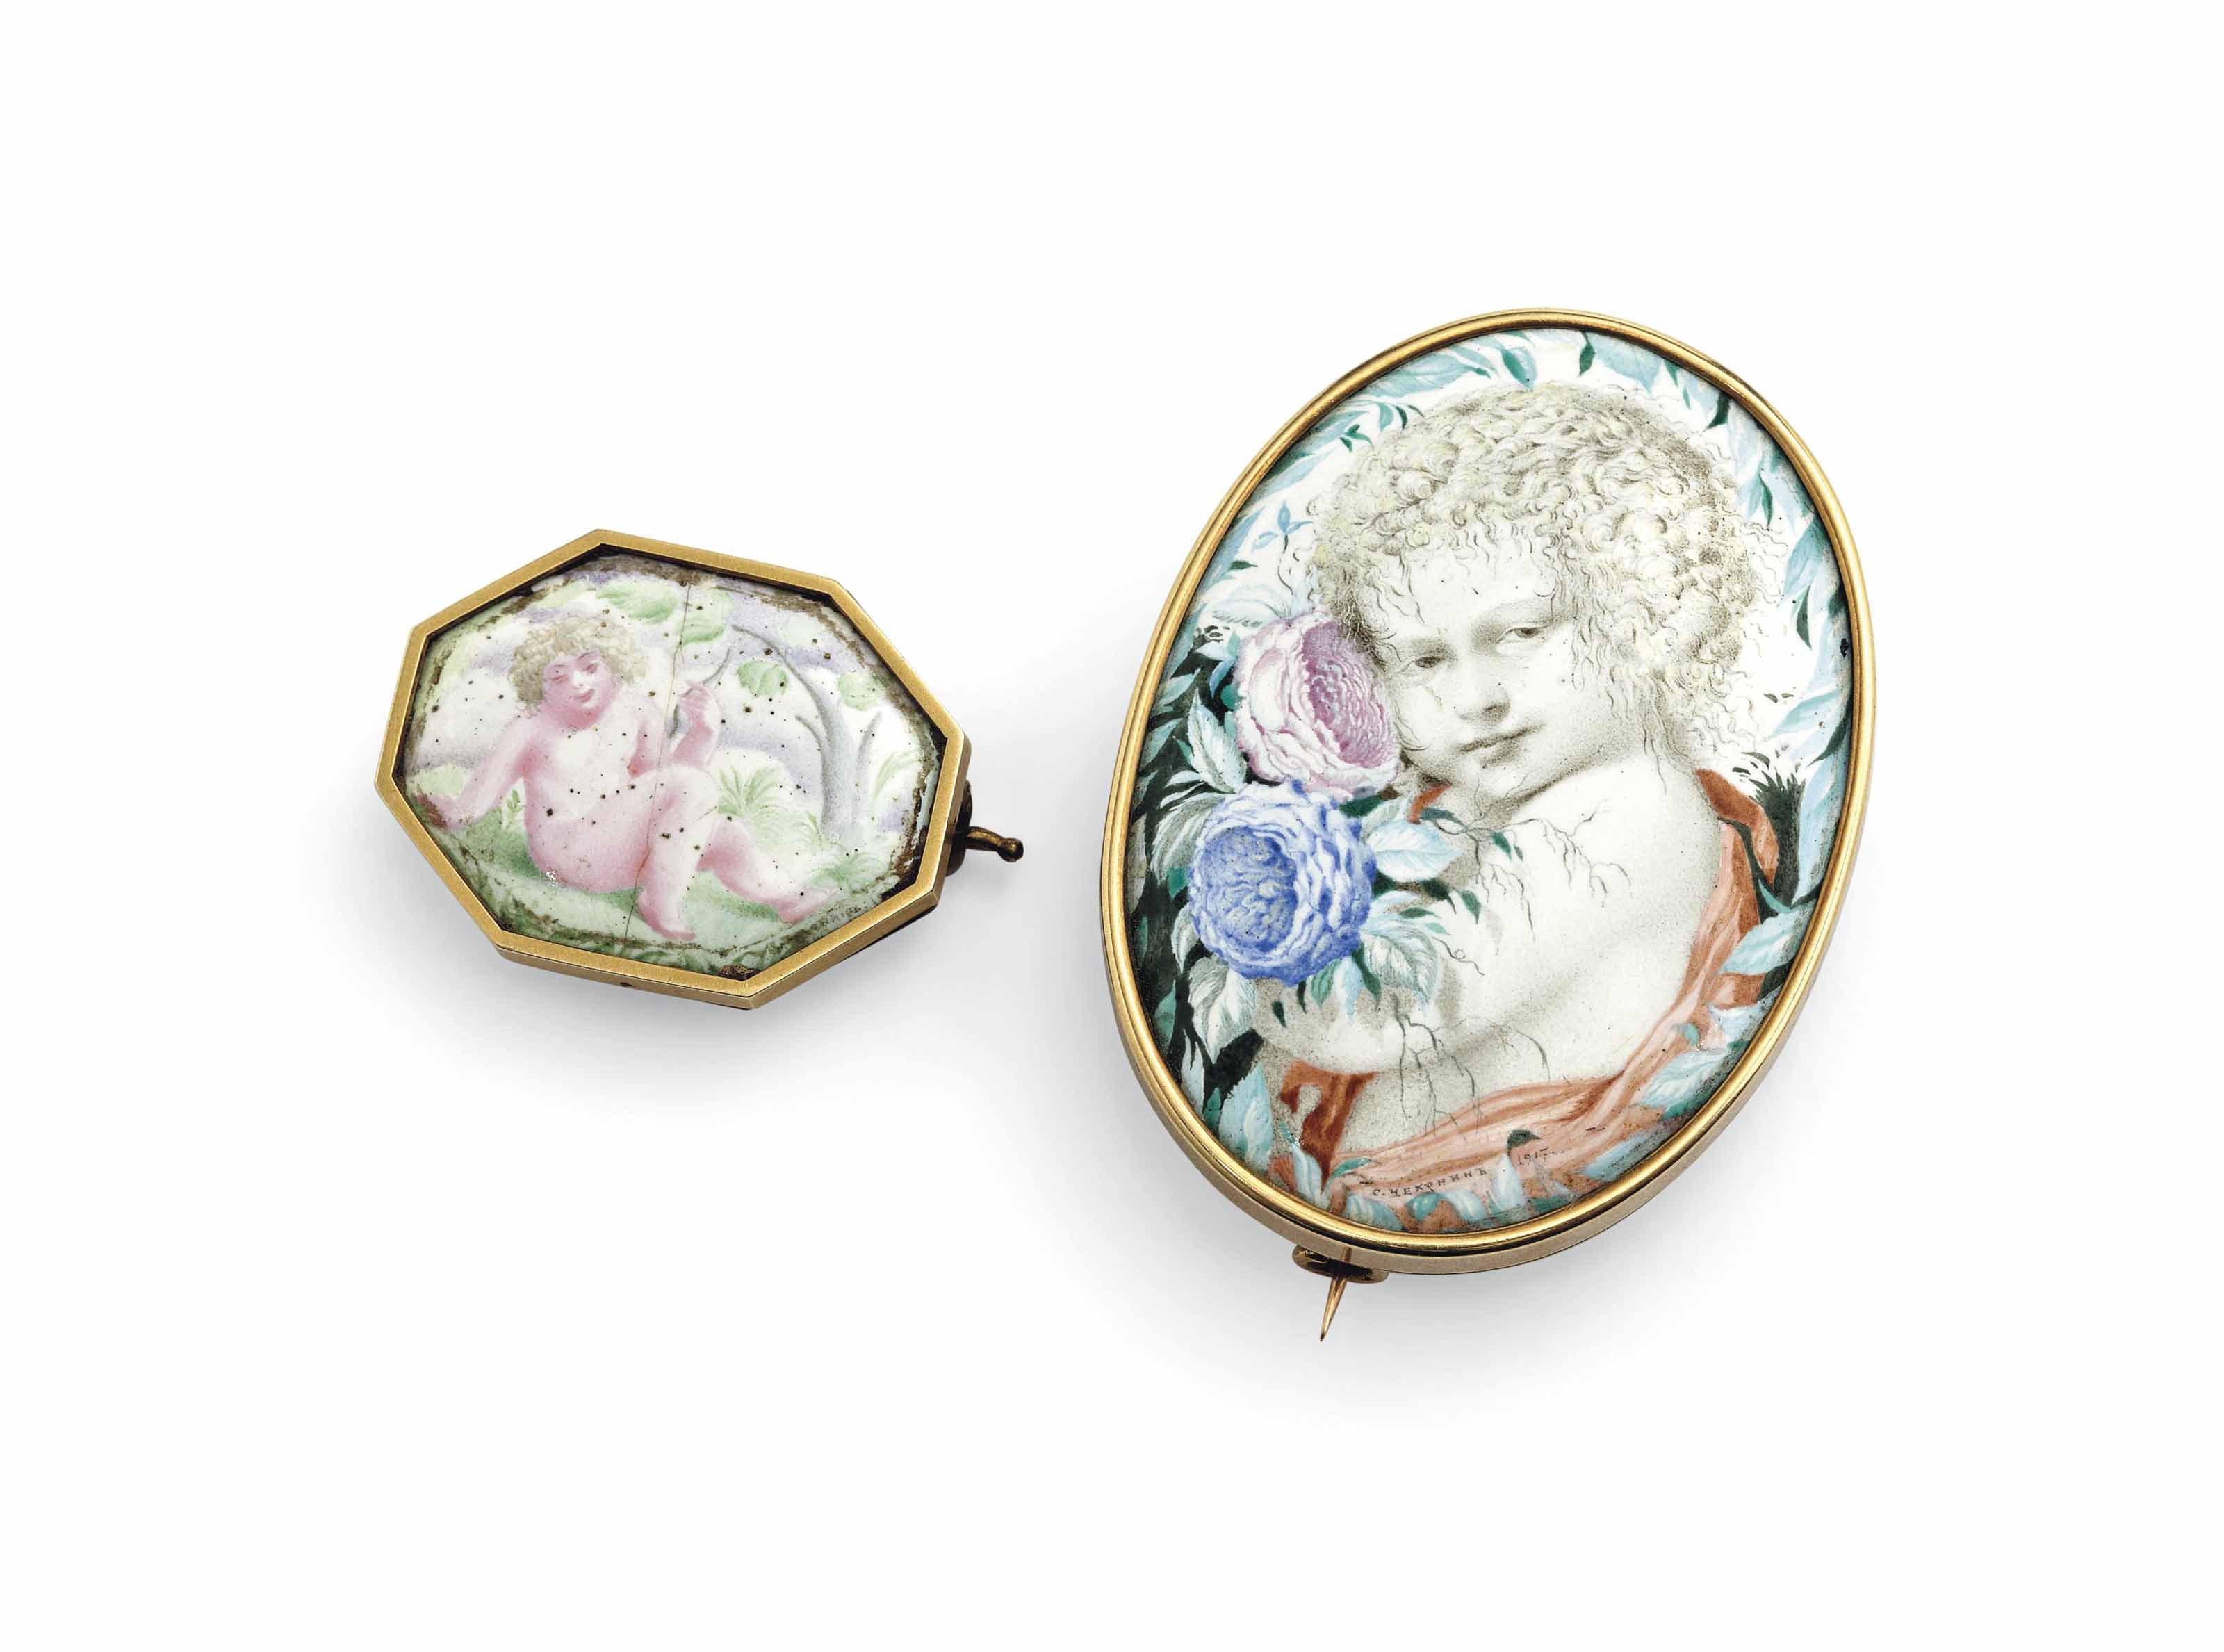 A Putto with a bouquet of peonies; and A reclining Putto